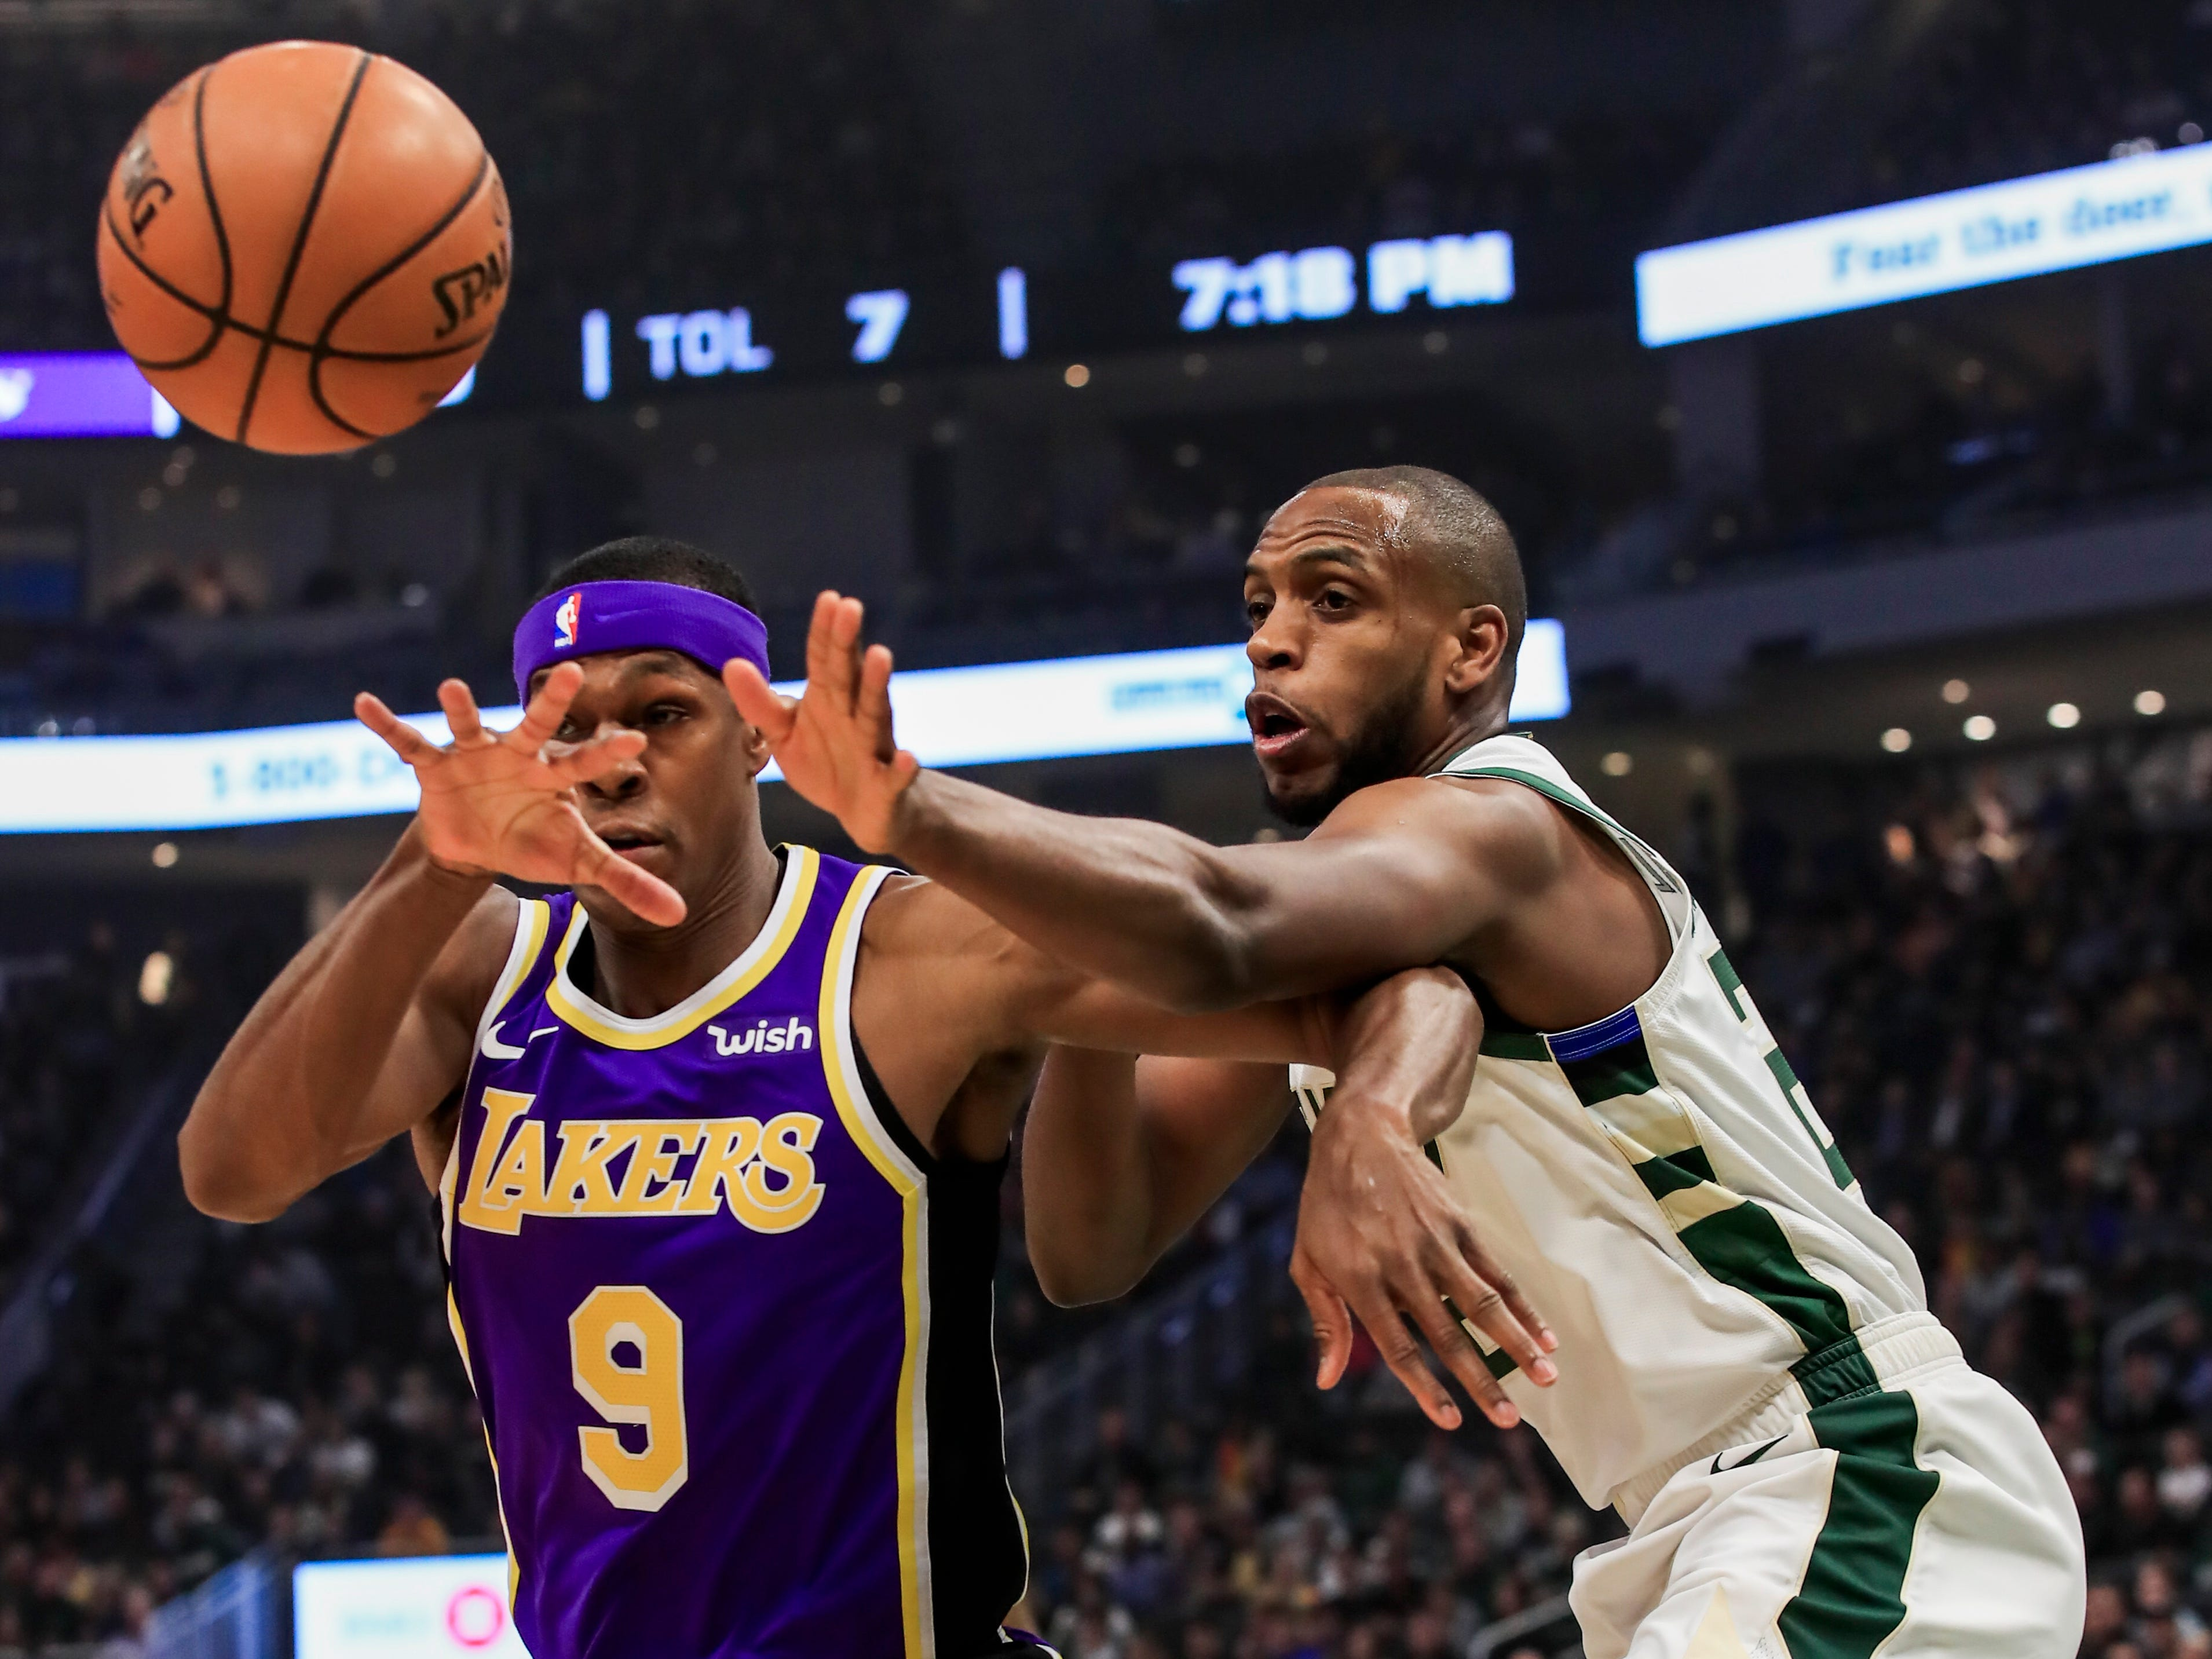 Lakers guard Rajon Rondo and e Bucks forward Khris Middleton watch the ball go out of bounds.